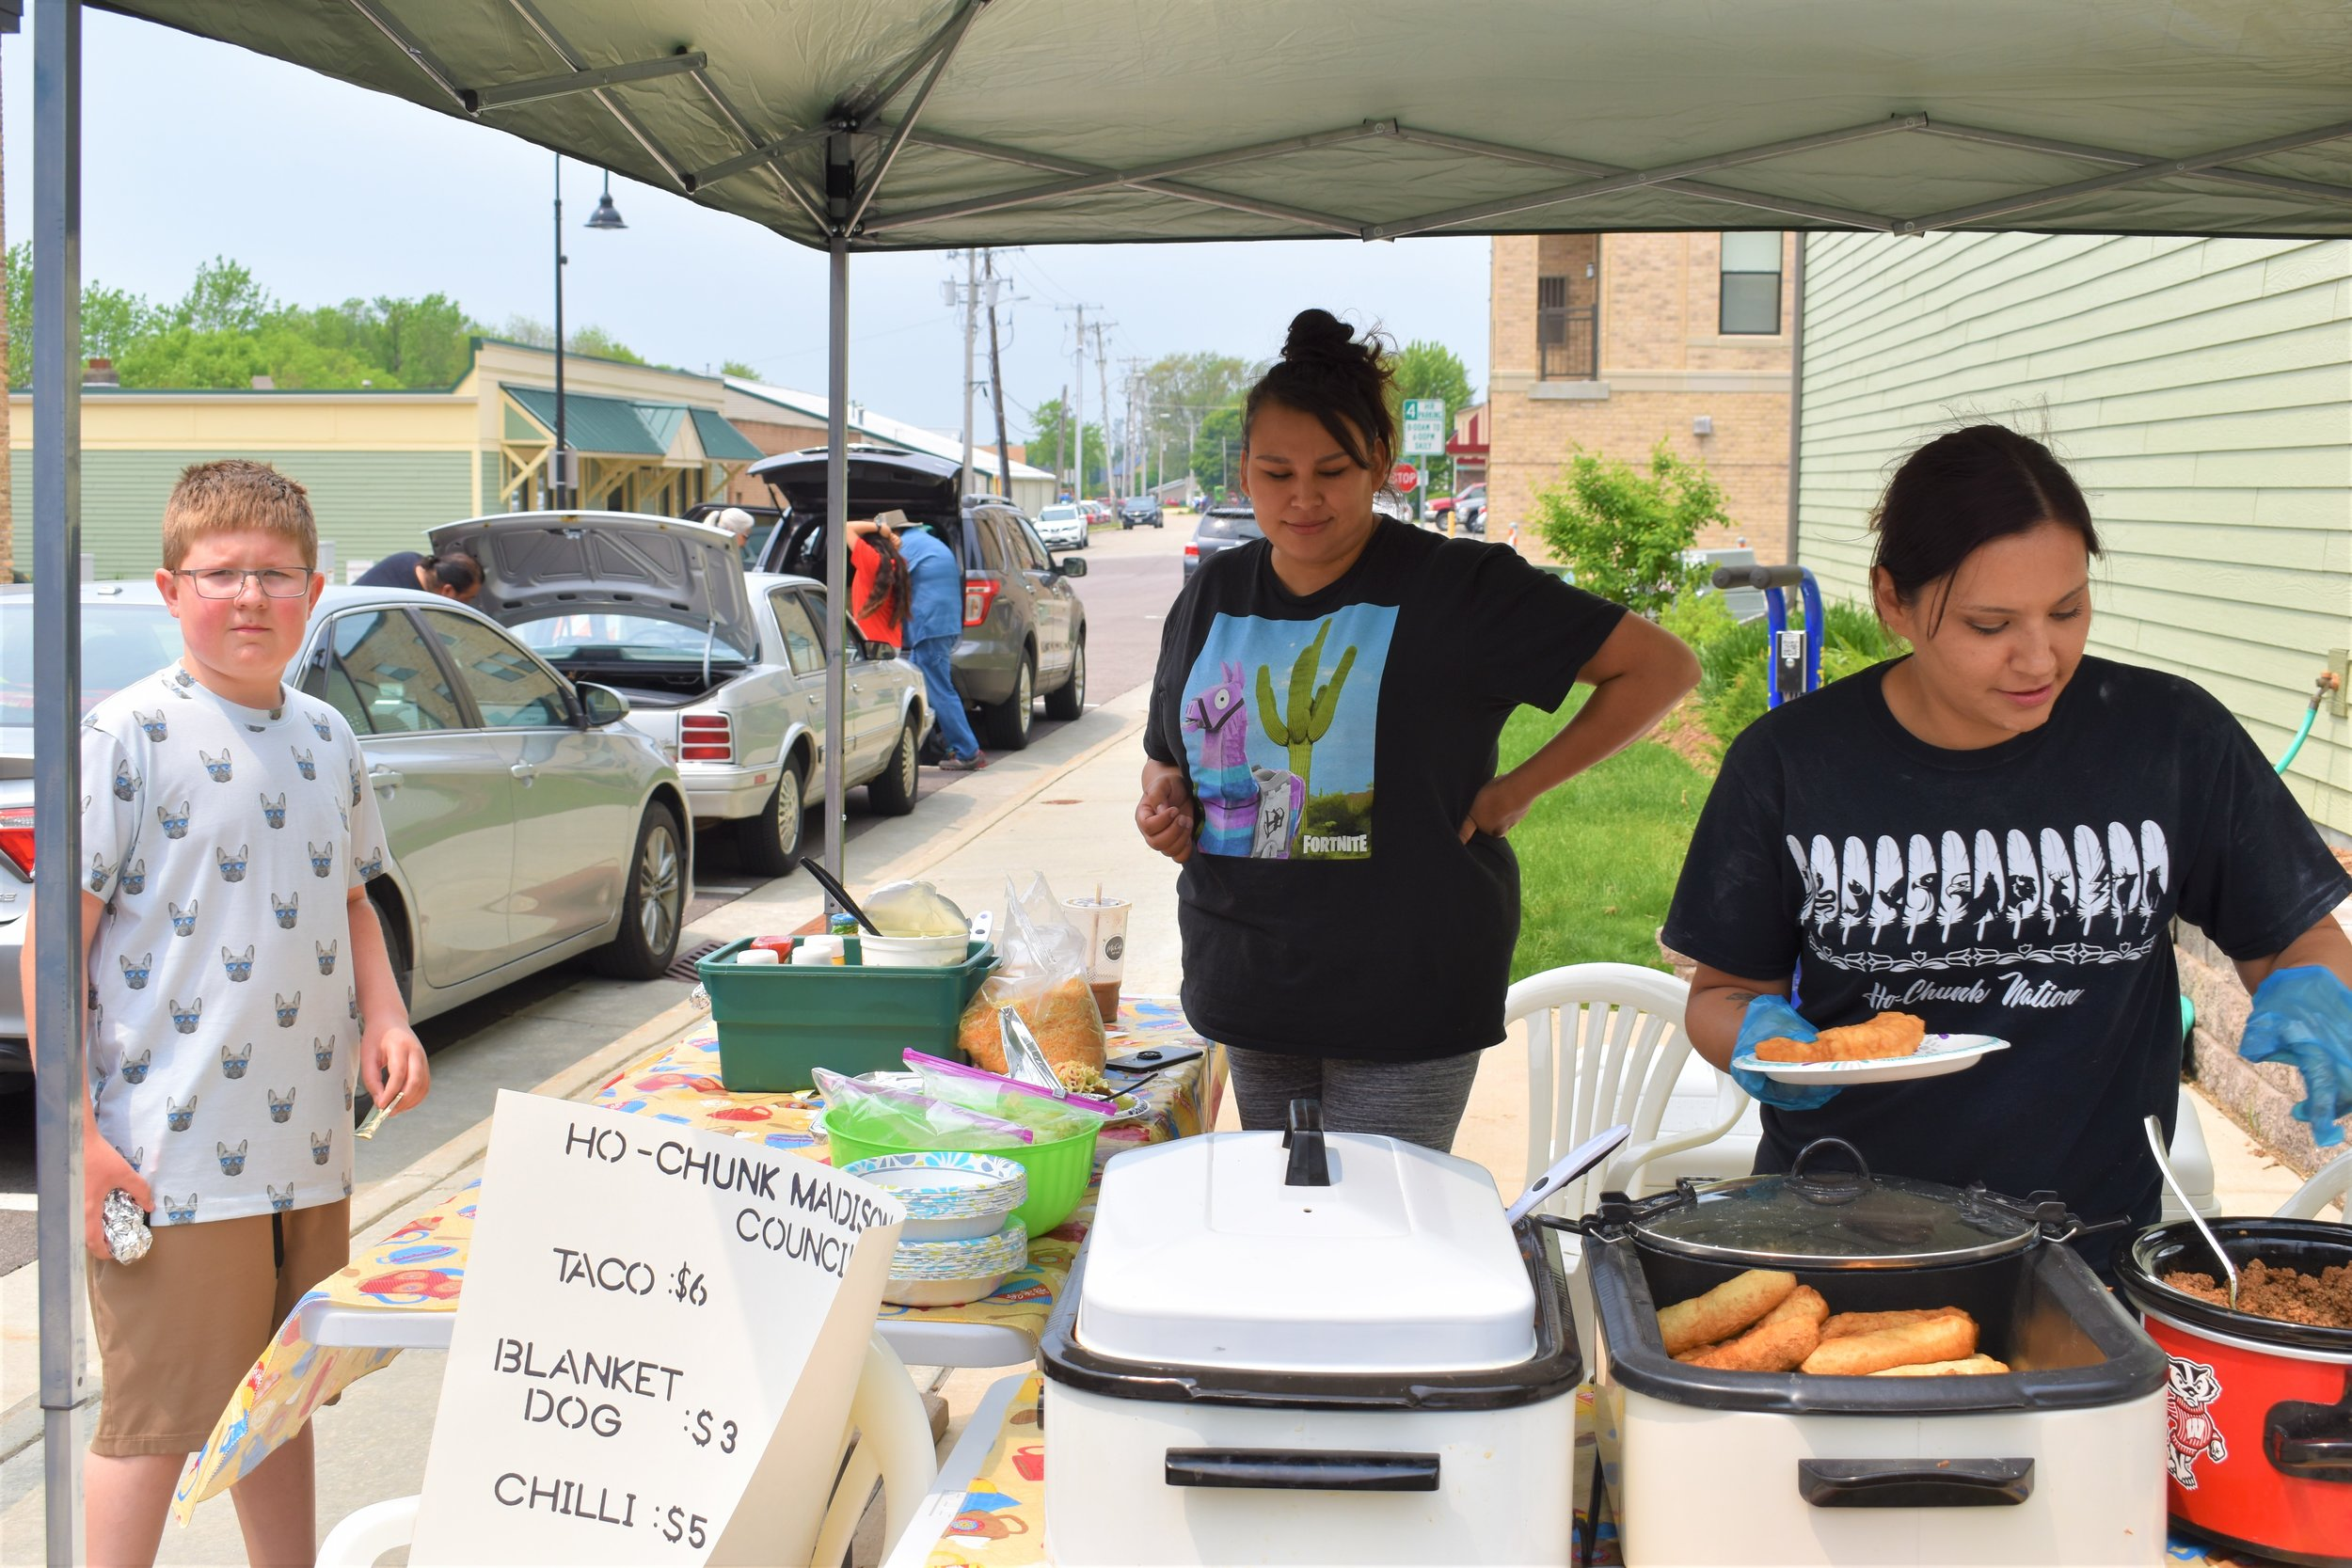 Pictured L to R, Nikki Thundercloud and Heather Hopinkah serve up Indian Tacos and Blanket Dogs